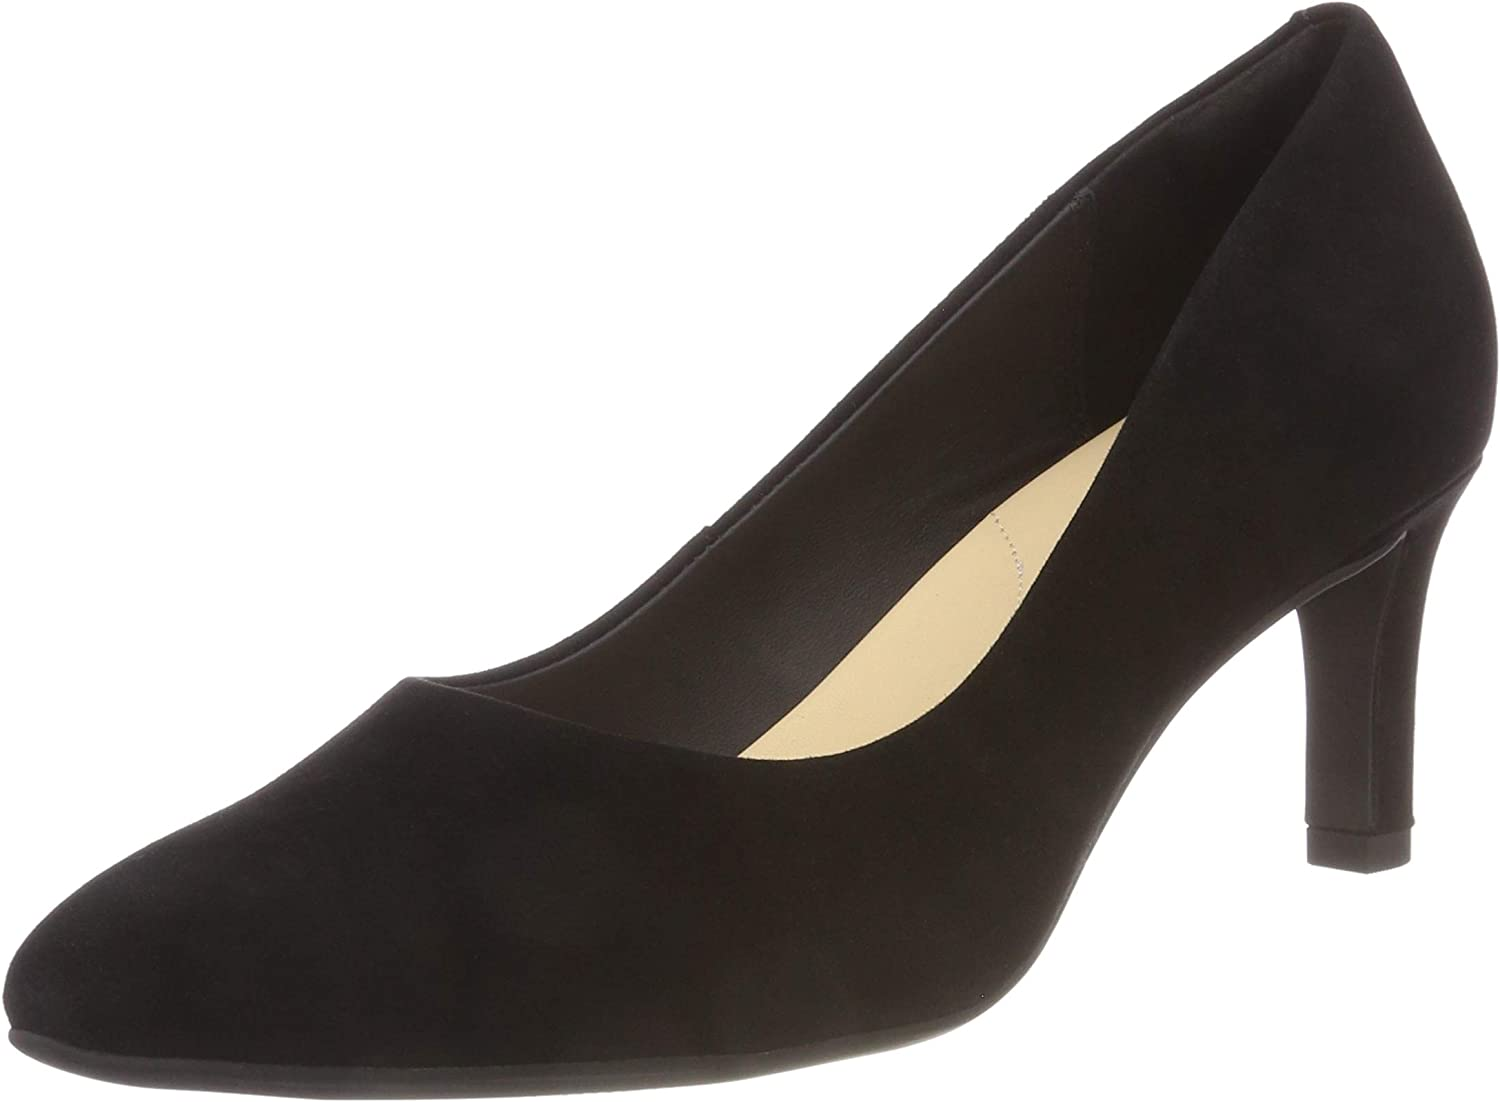 Clarks Calla Rose Black Suede Leather Womens Shoes Slip Same Max 69% OFF day shipping Court On